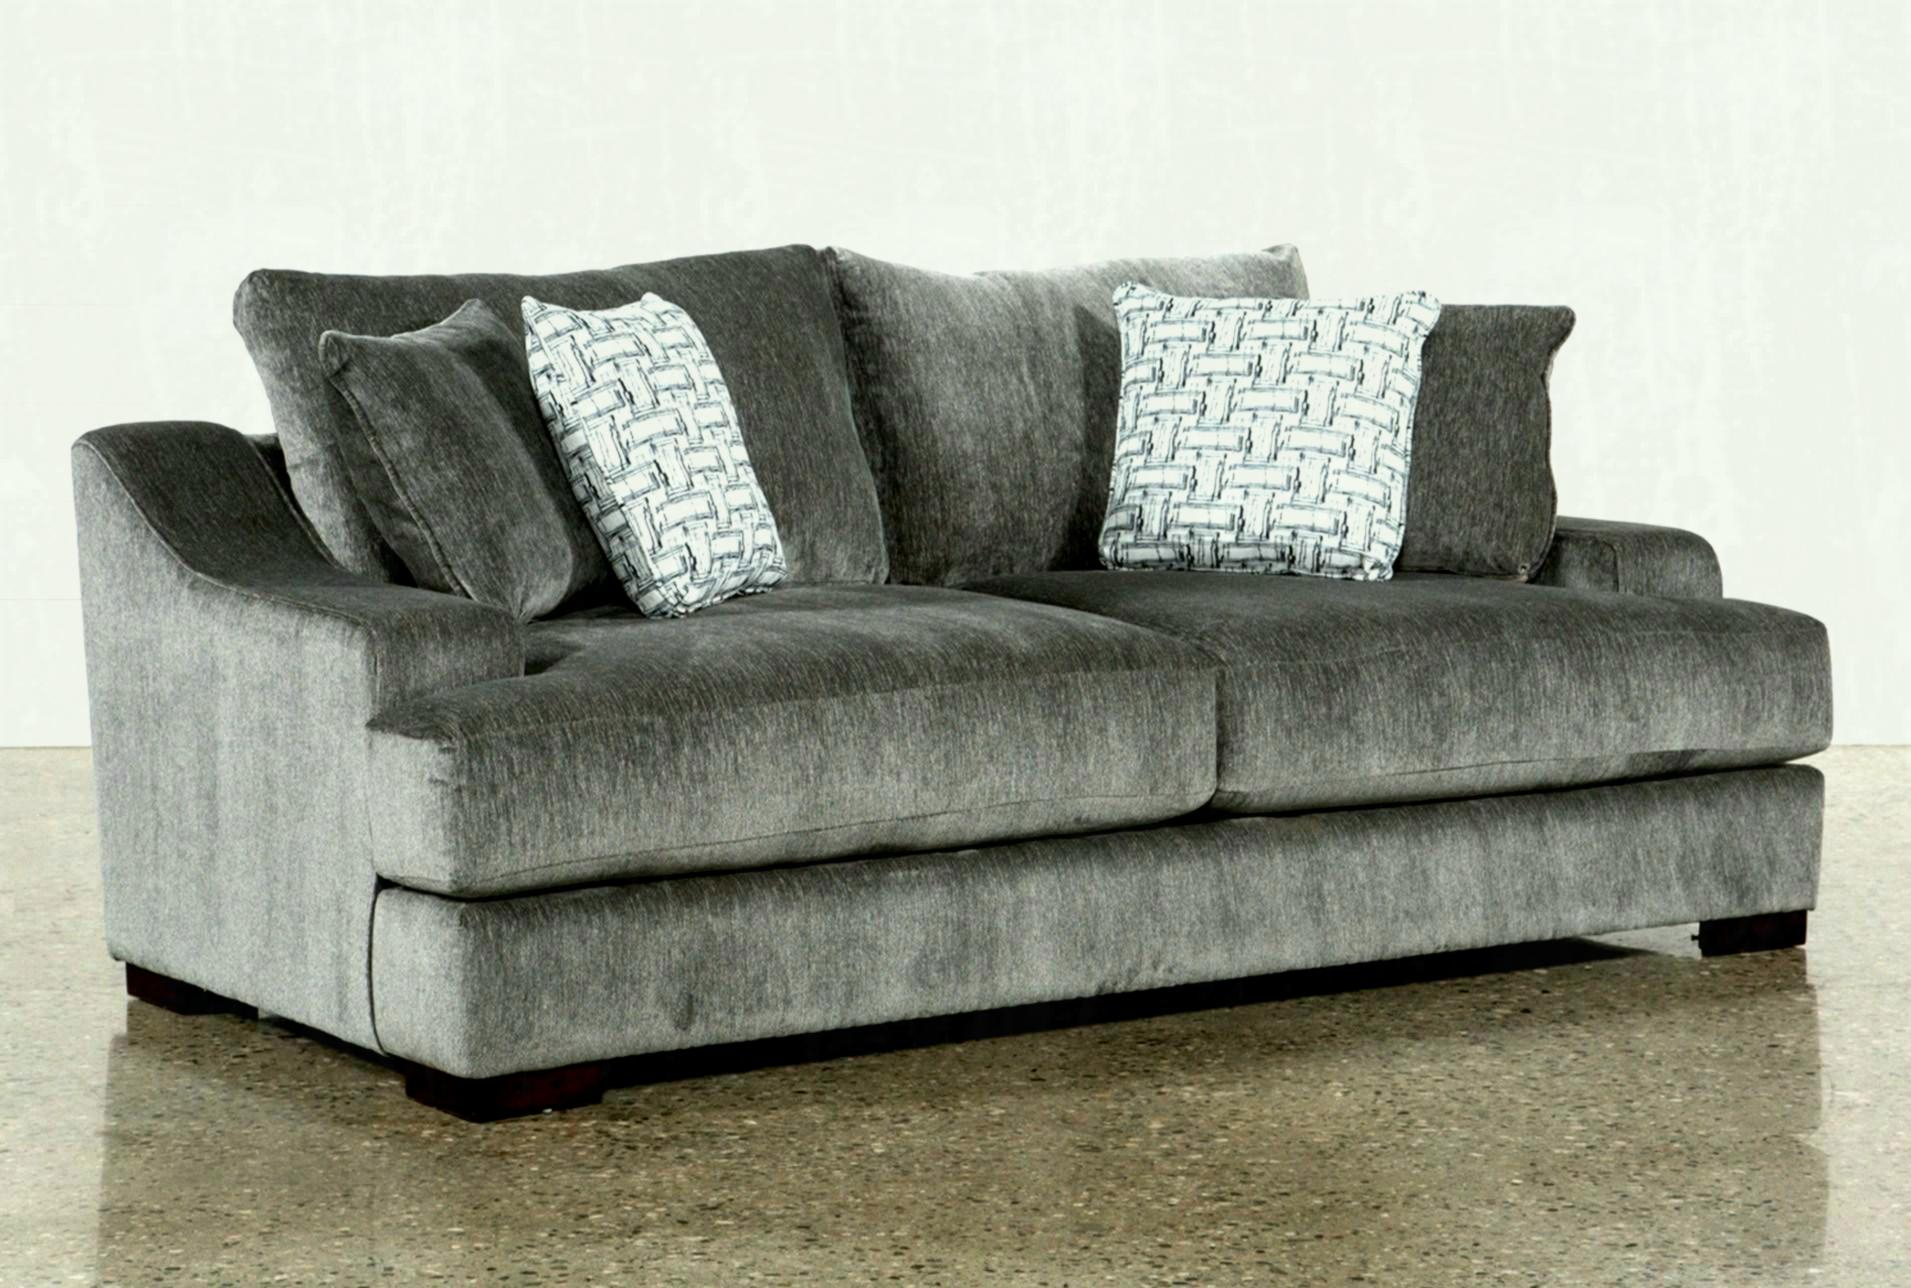 Mcdade Graphite Sofa Turdur Living Spaces – Garage Plans With Living Pertaining To Mcdade Graphite Sofa Chairs (Image 17 of 25)